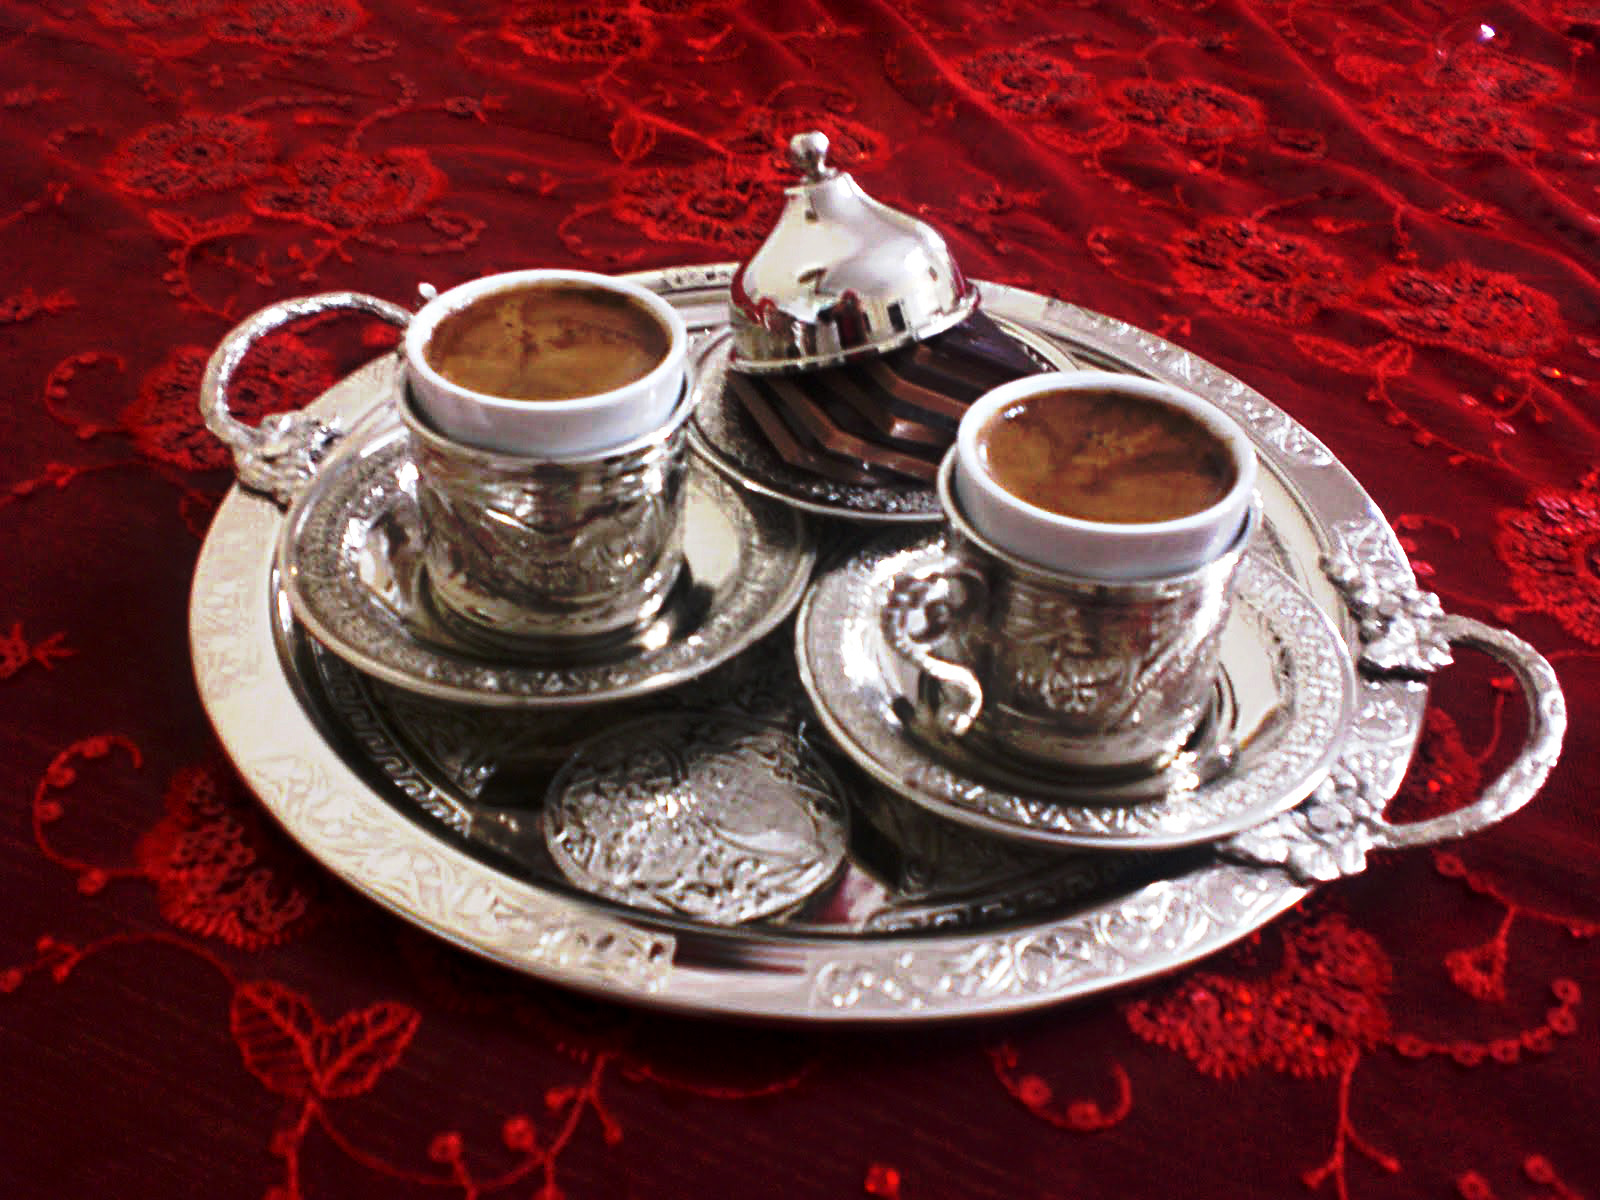 turkish-coffee-turkey-traditional.jpg